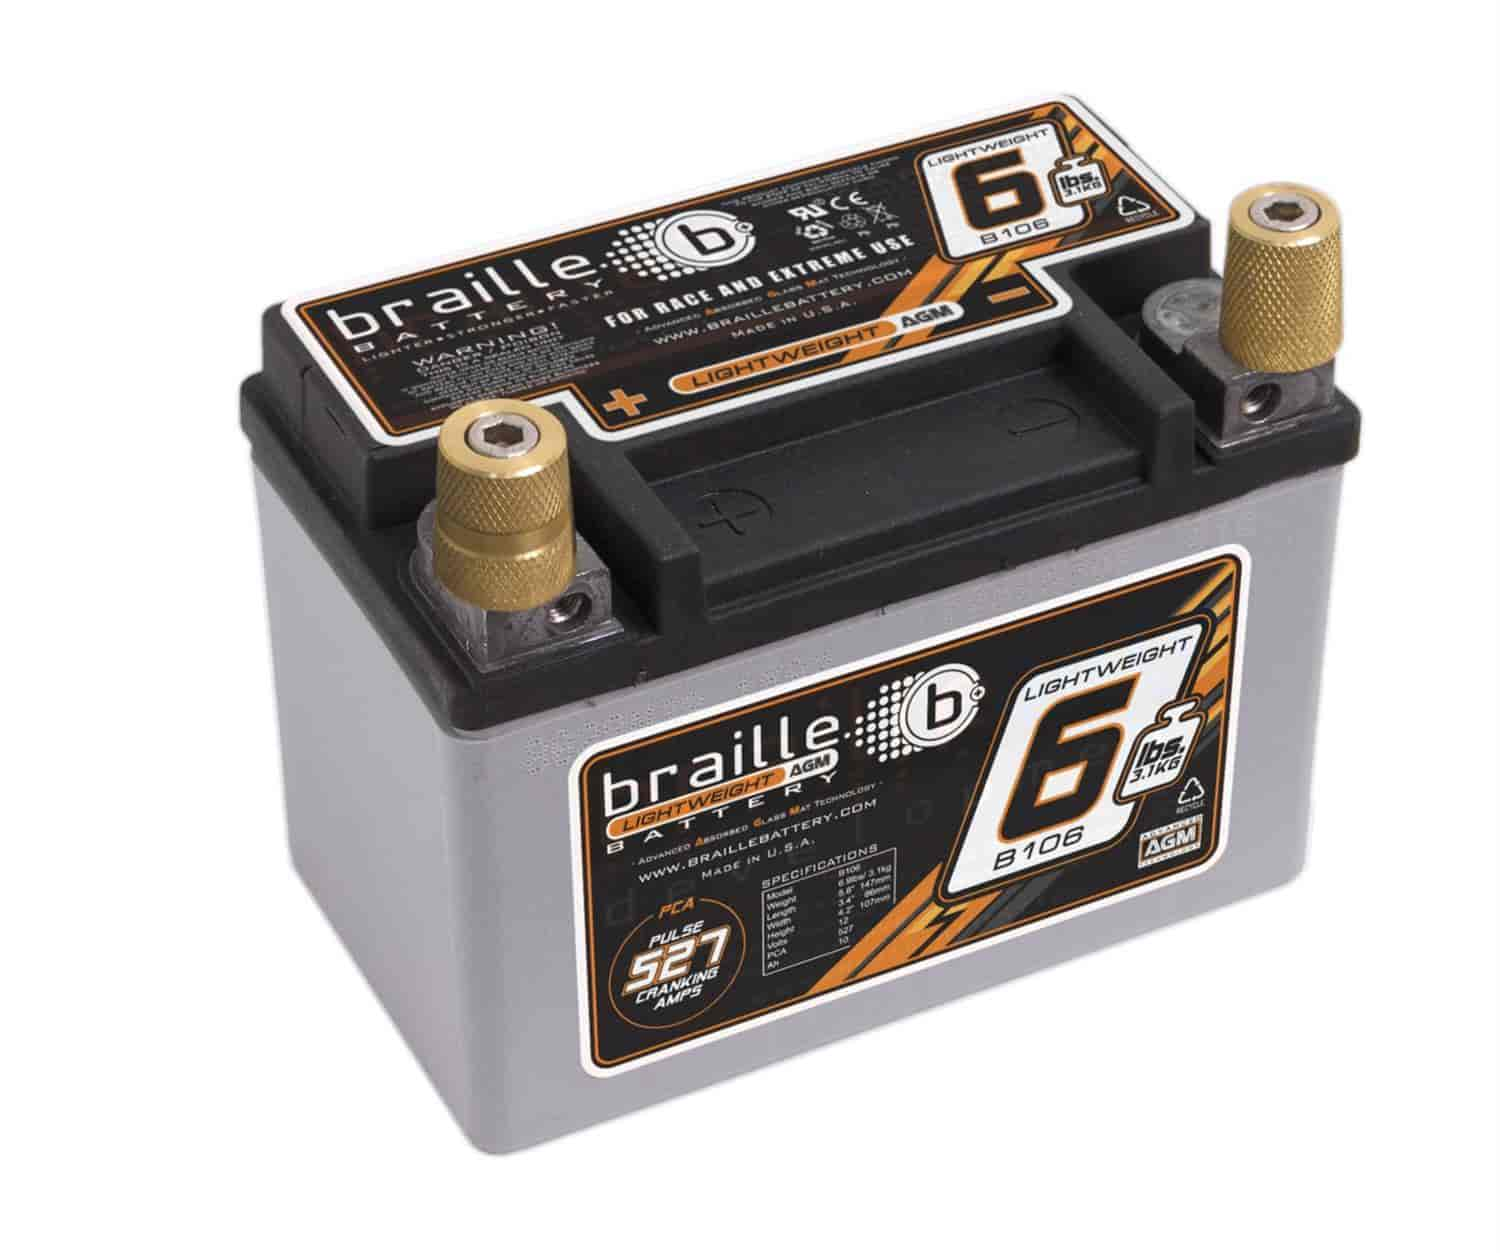 Braille Battery B106 - Braille Advanced AGM Lightweight Racing Batteries